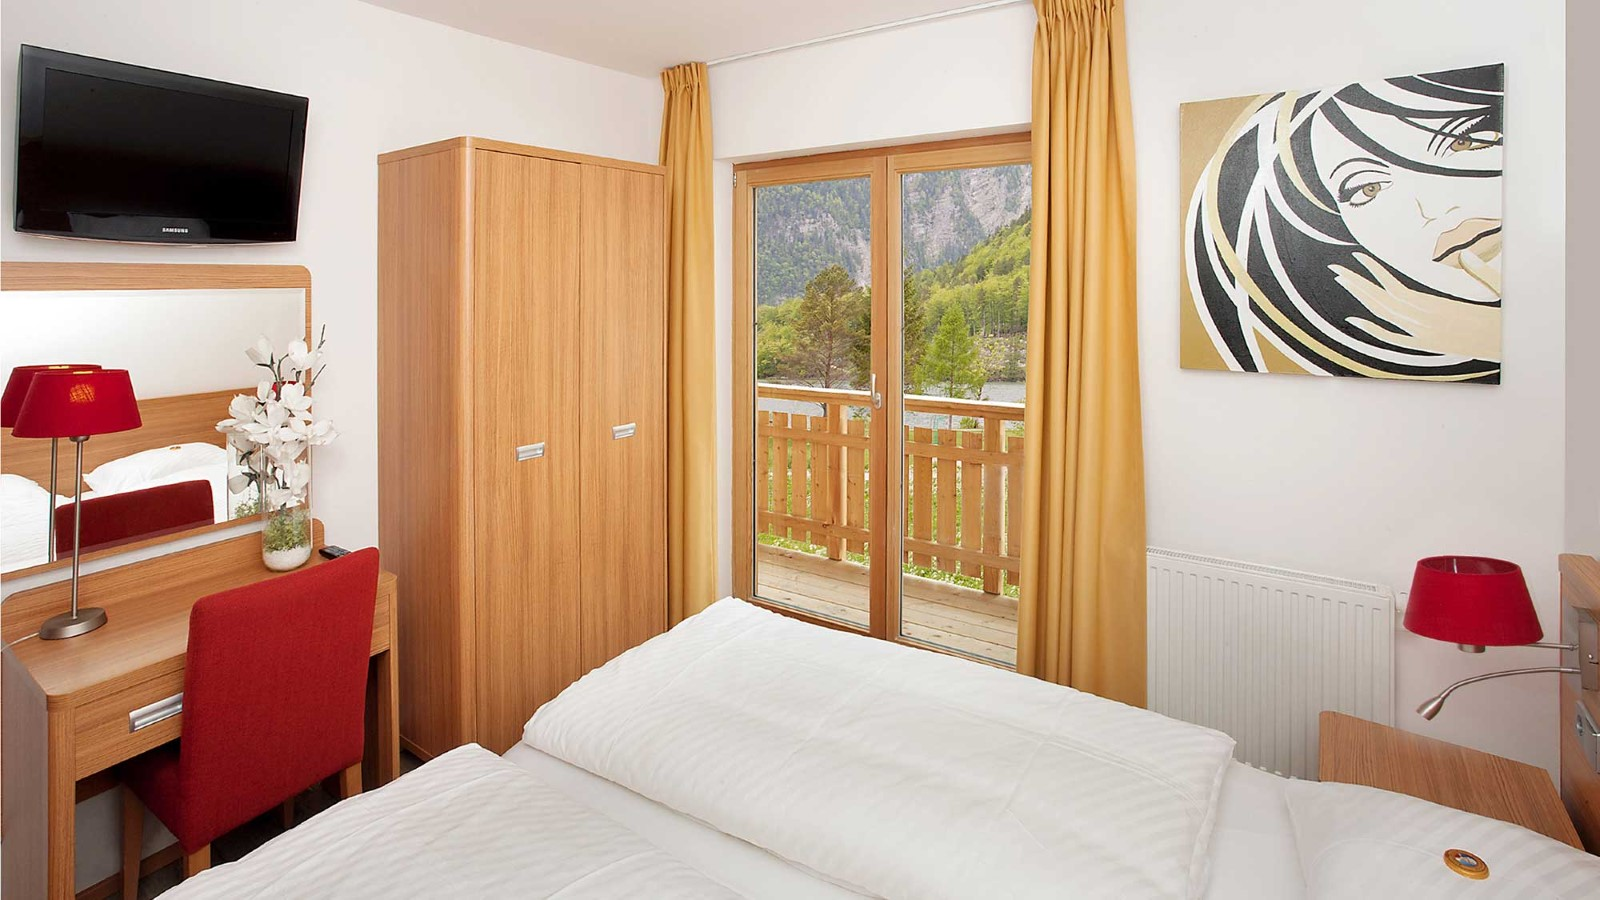 Chalet Attersee - 3 chambres